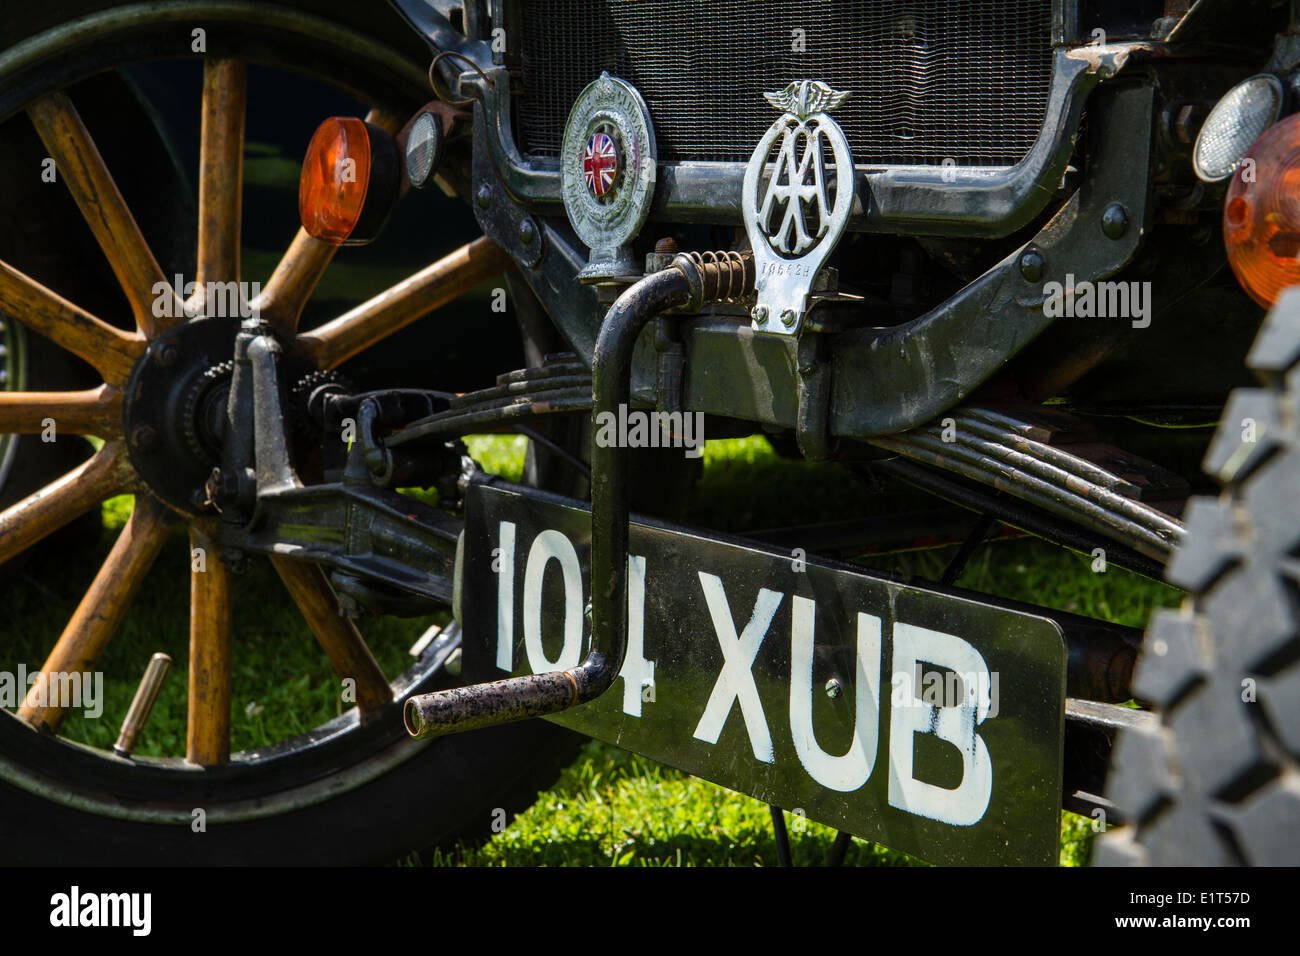 Hand crank starting handle on Model T Ford vintage car. - Stock Image